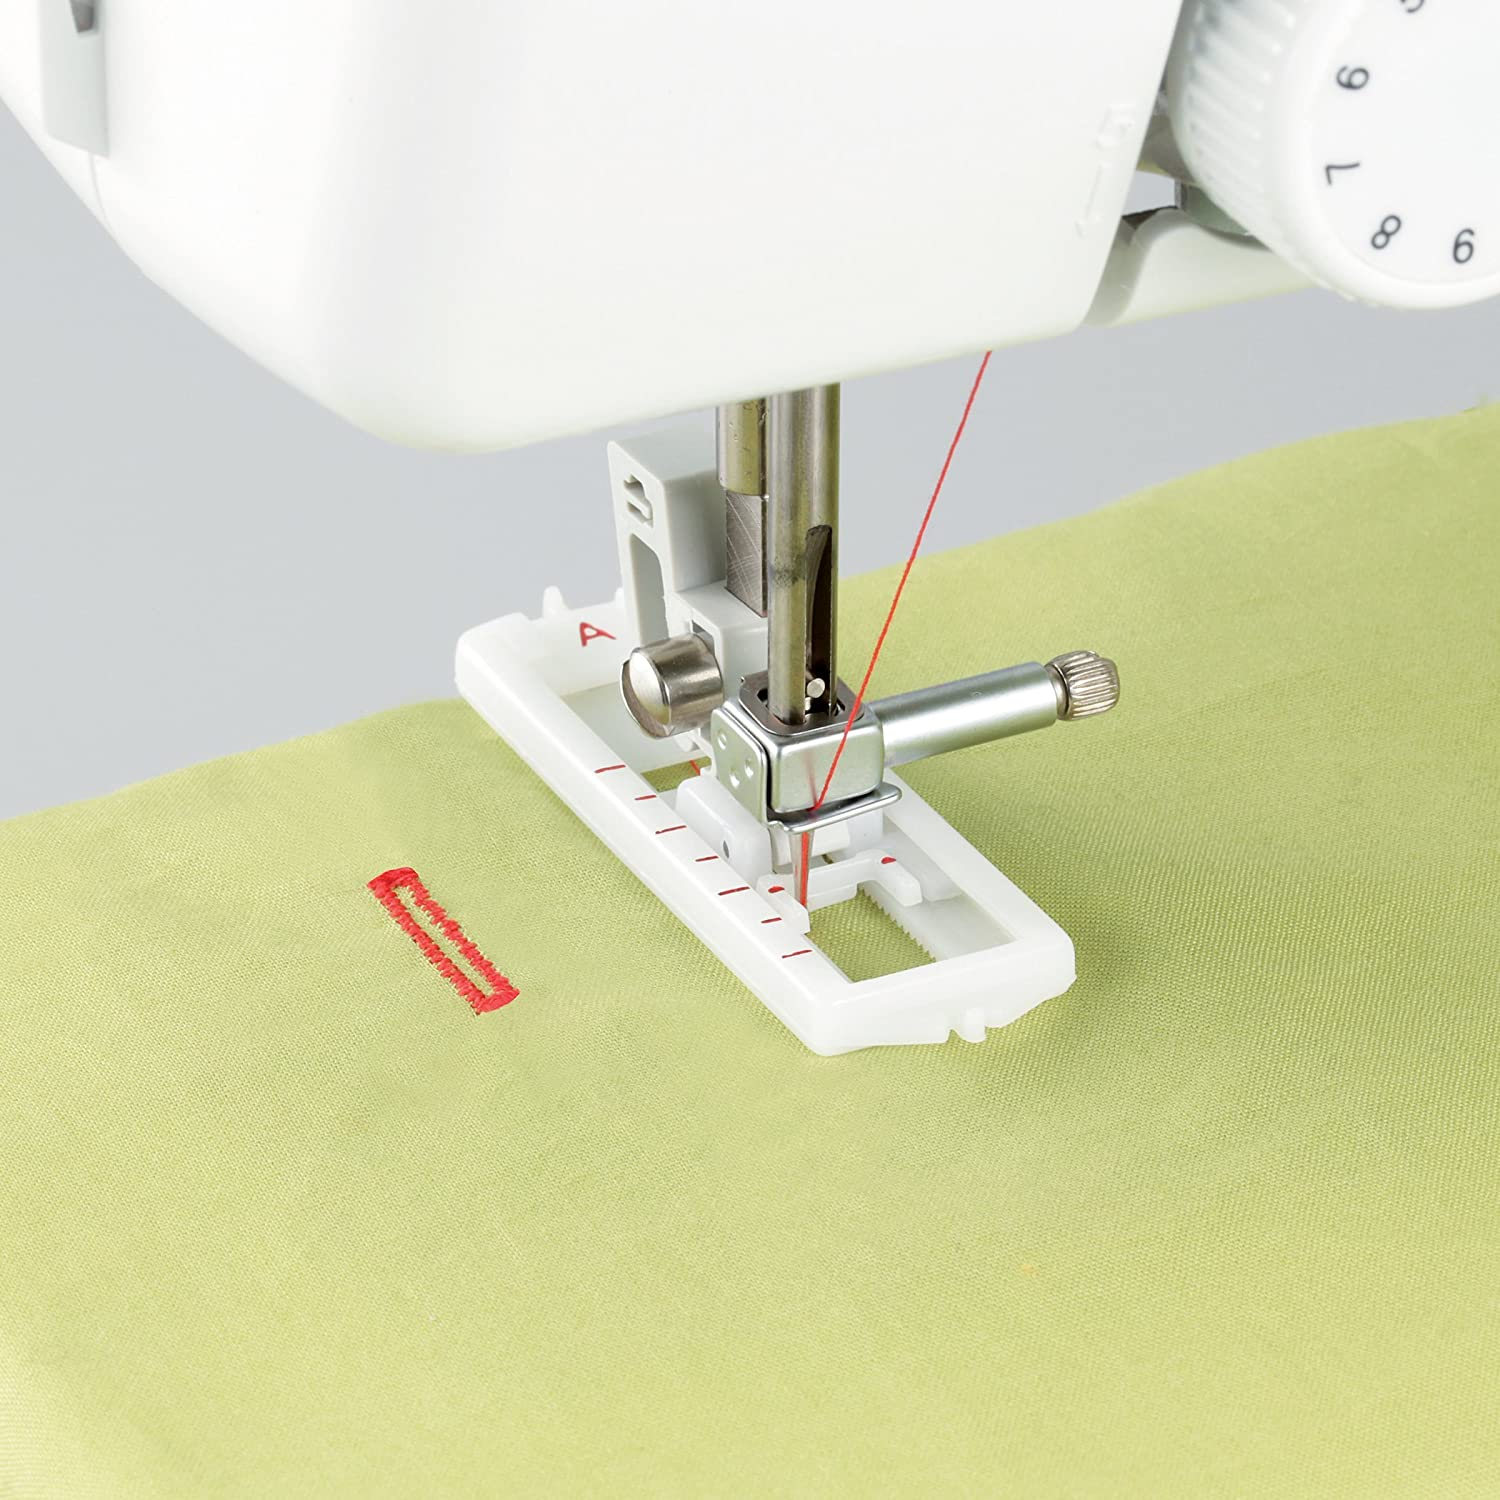 Brother Sewing Machine Xm1010 10 Stitch Free Threading Diagrams Portable Built In Stitches 4 Included Feet 25 Year Limited